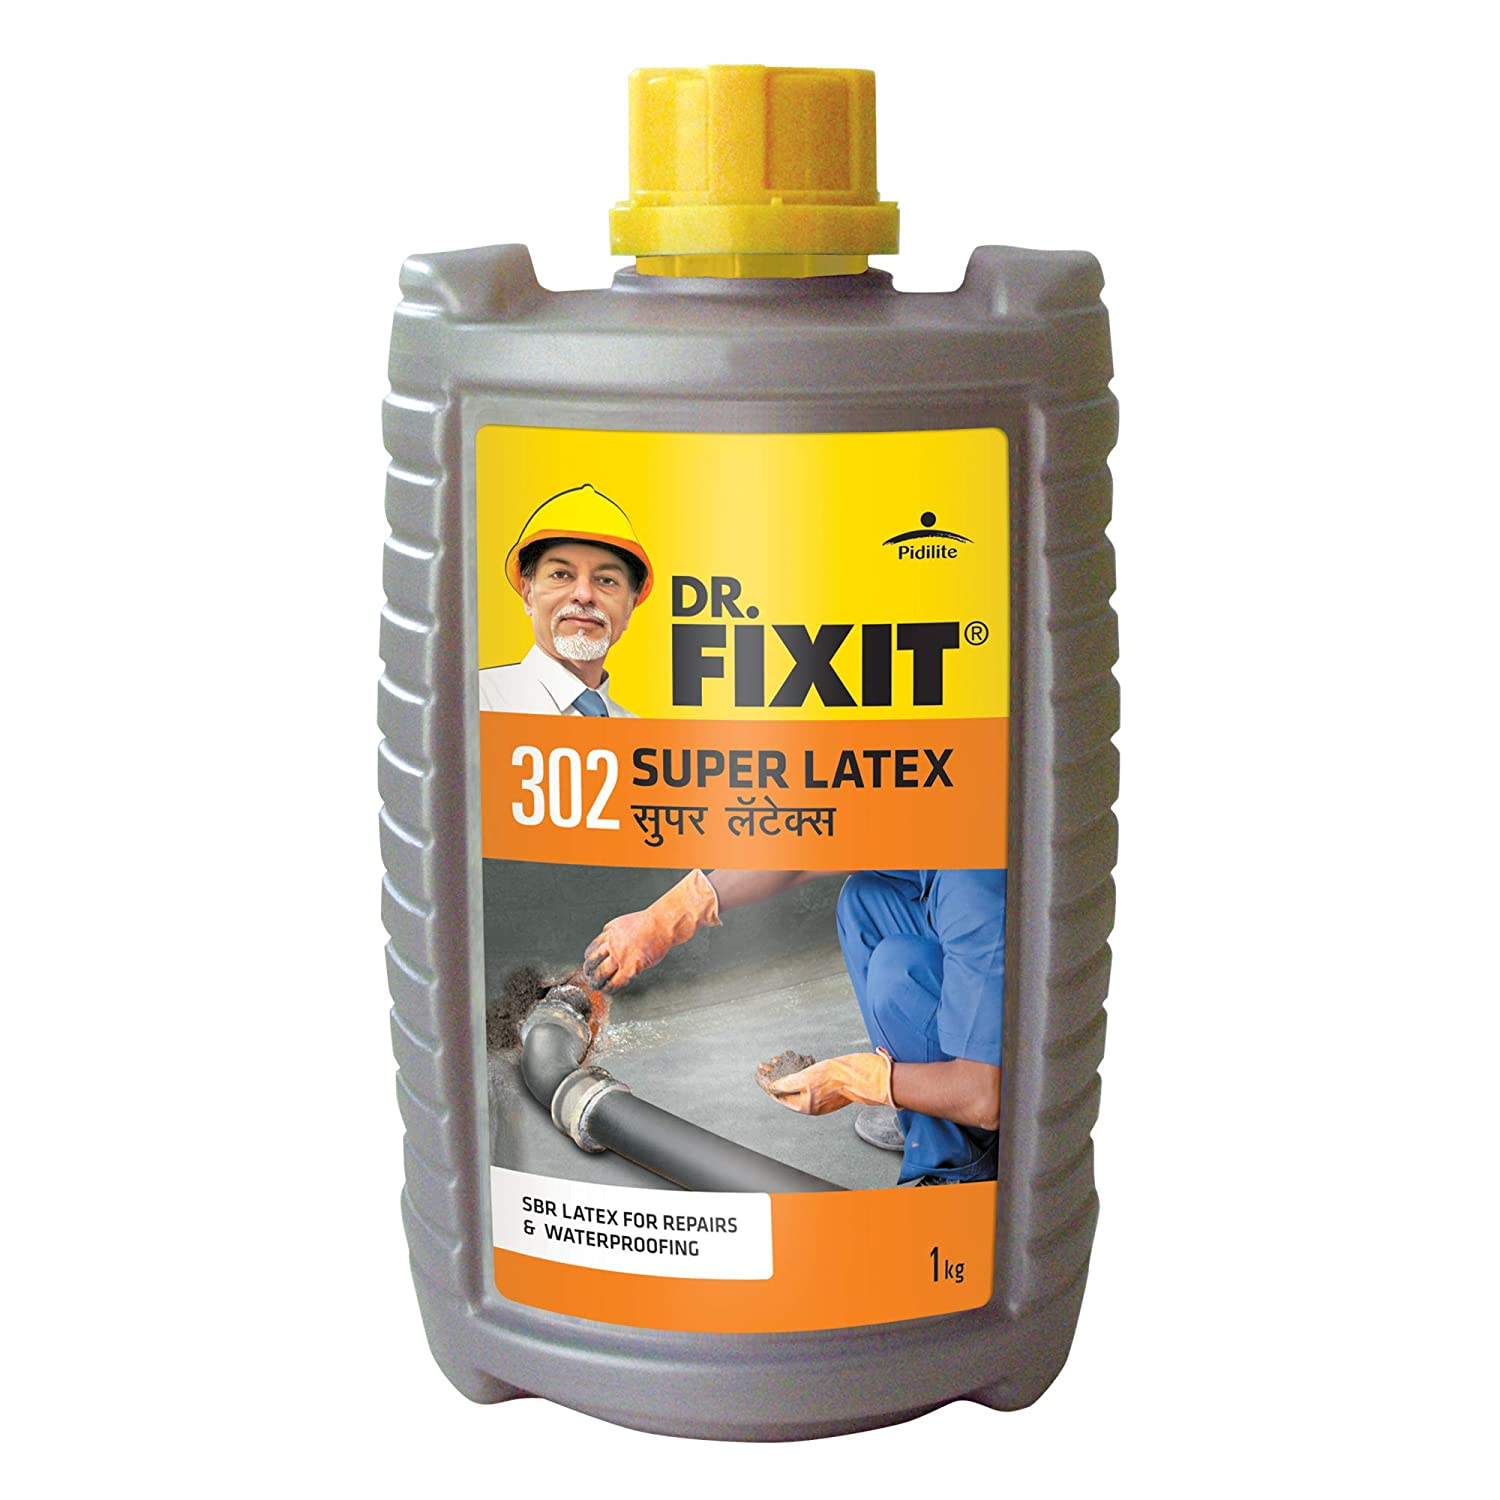 Dr Fixit 302 Super Latex Sbr Latex For Waterproofing Repairs 1kg Amazon In Industrial Scientific